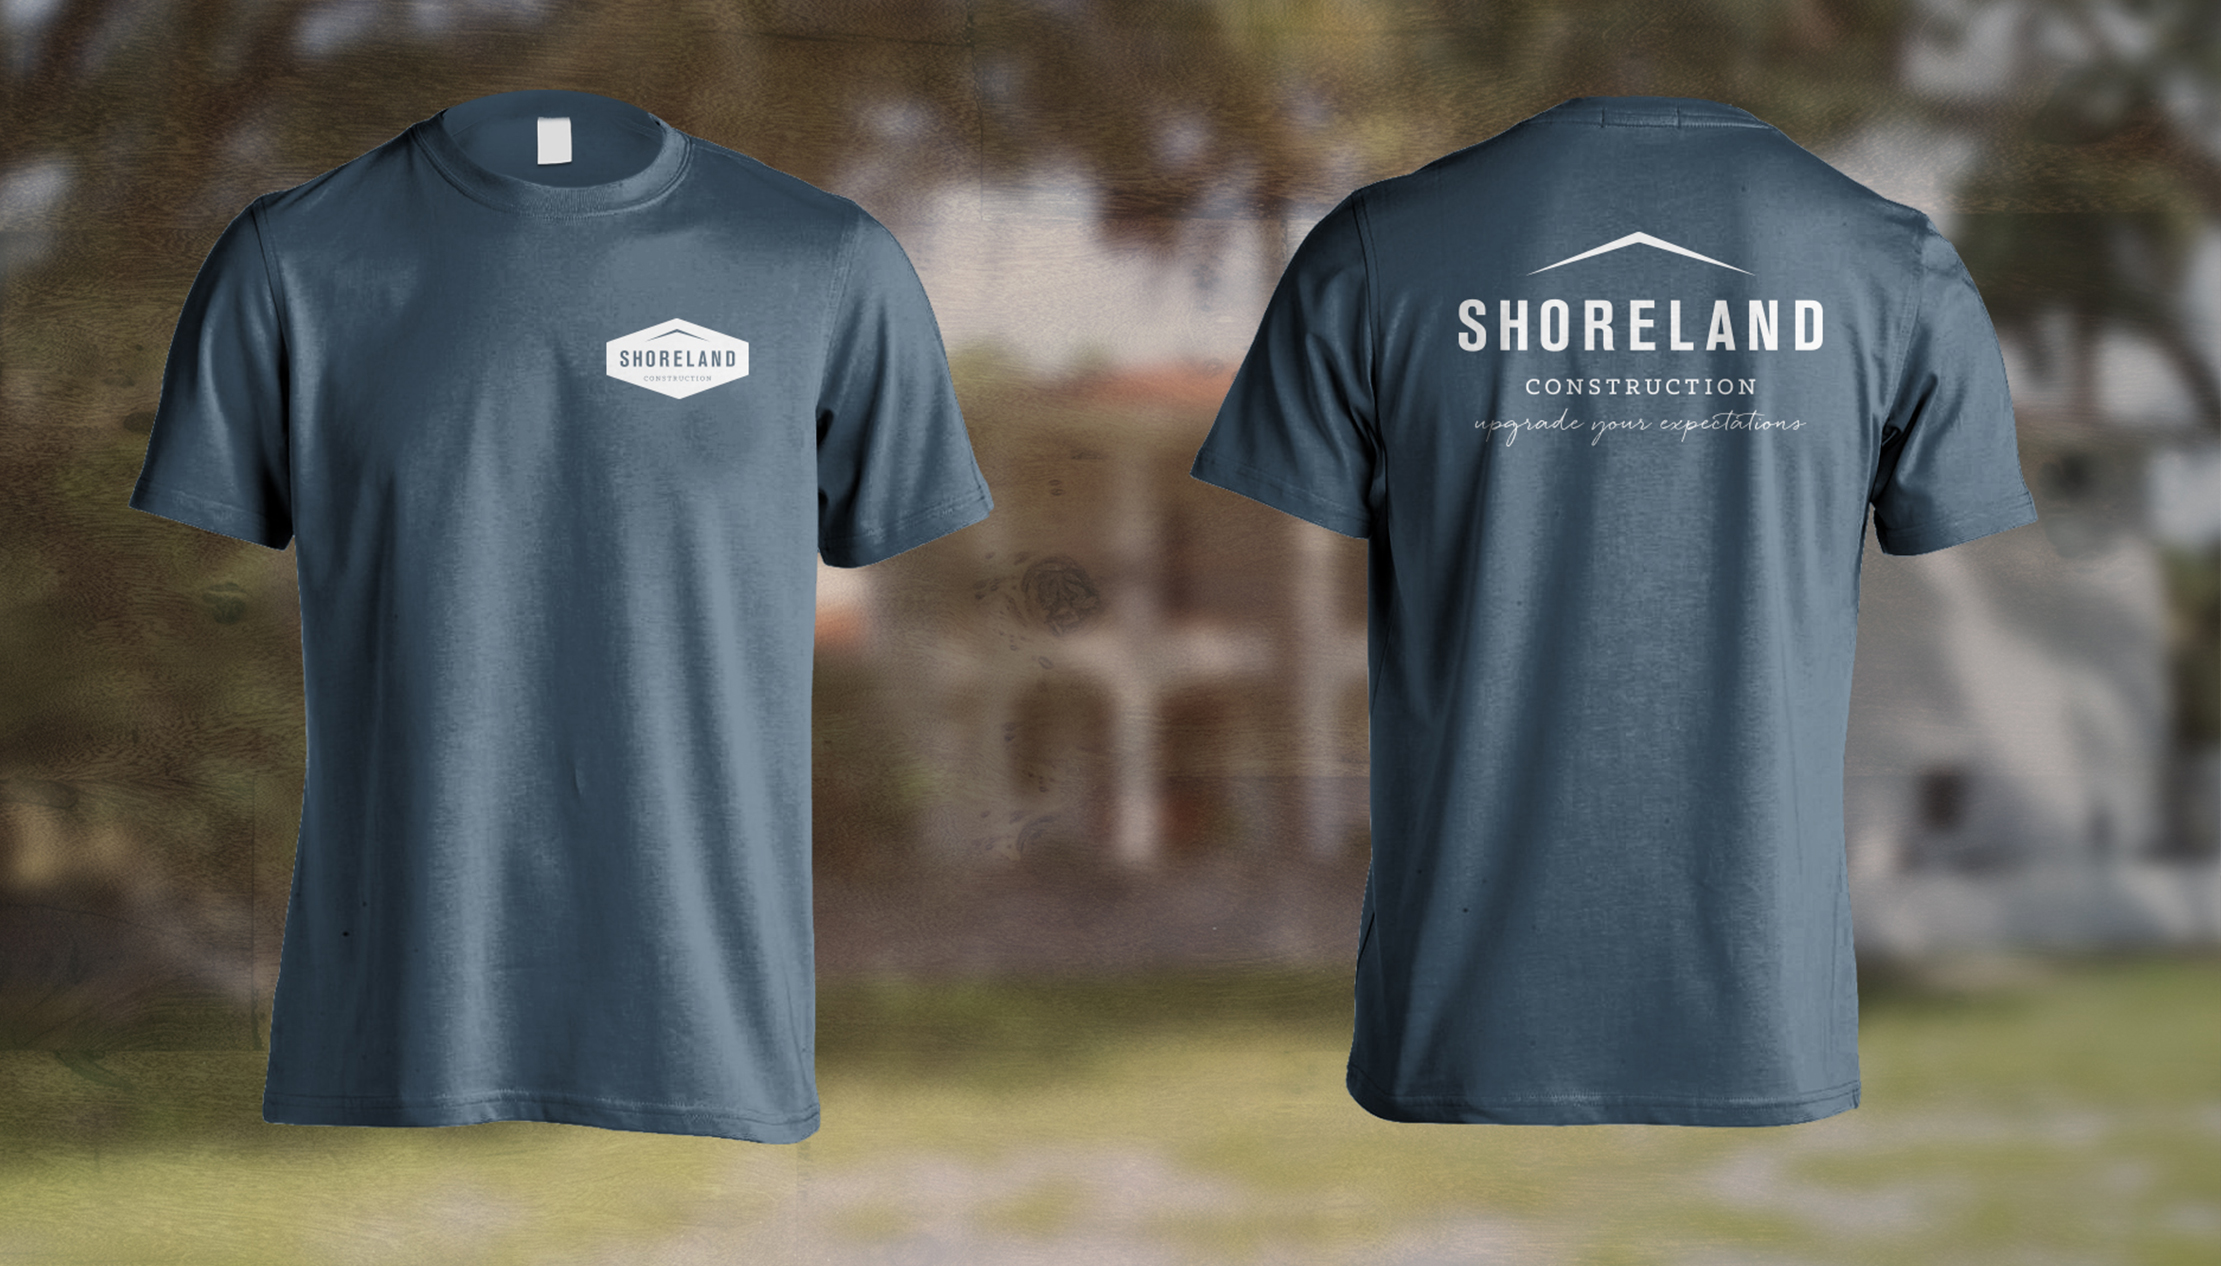 Shoreland Construction Branding Tee Shirts by Just Make Things